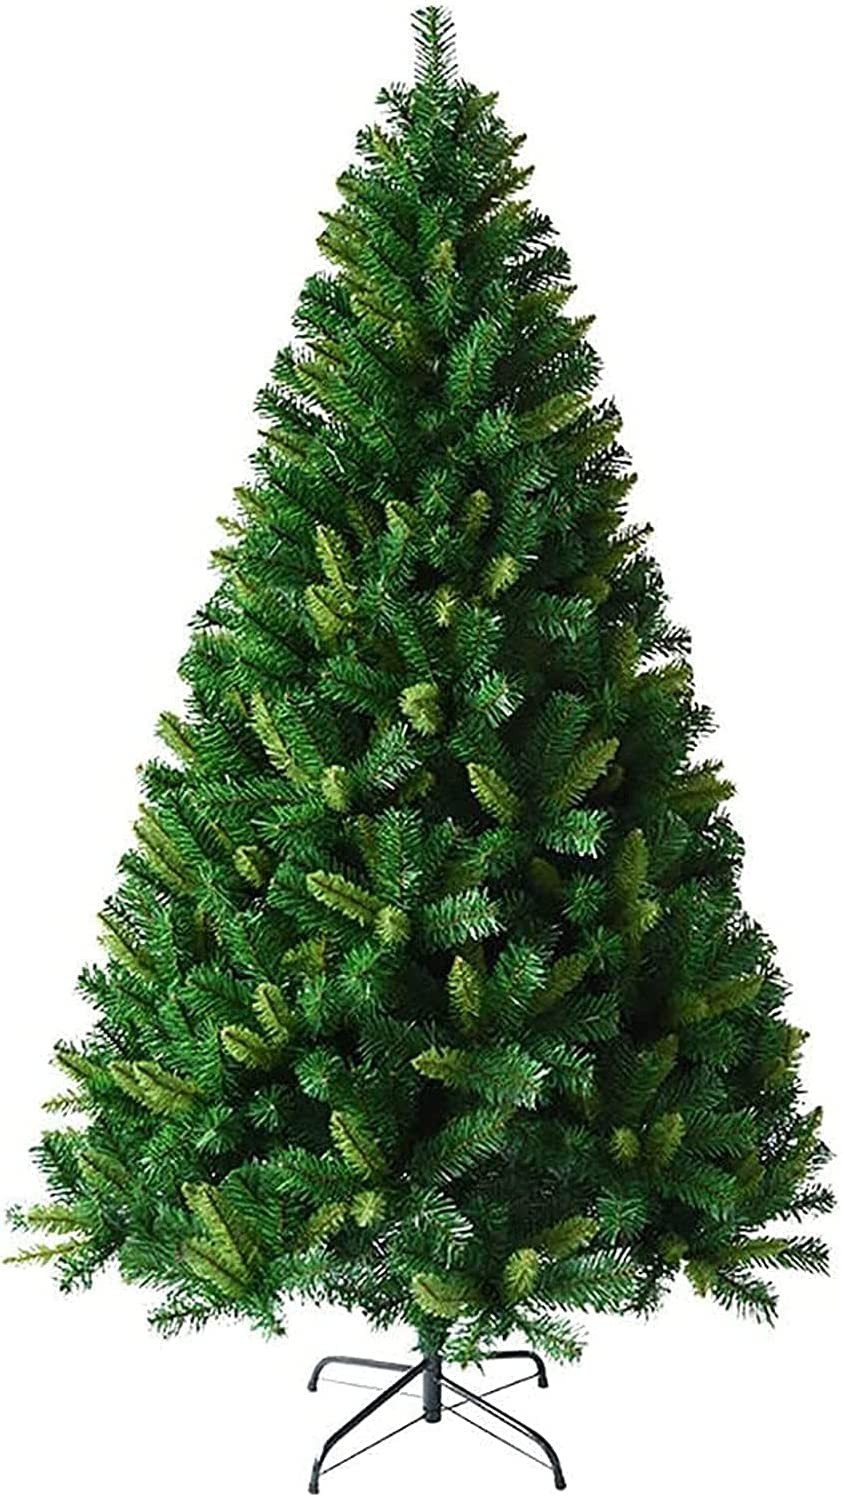 HGSDKECFS Christmas Trees Artificial Max 78% OFF Spruce Cheap Party Decorat Hinged